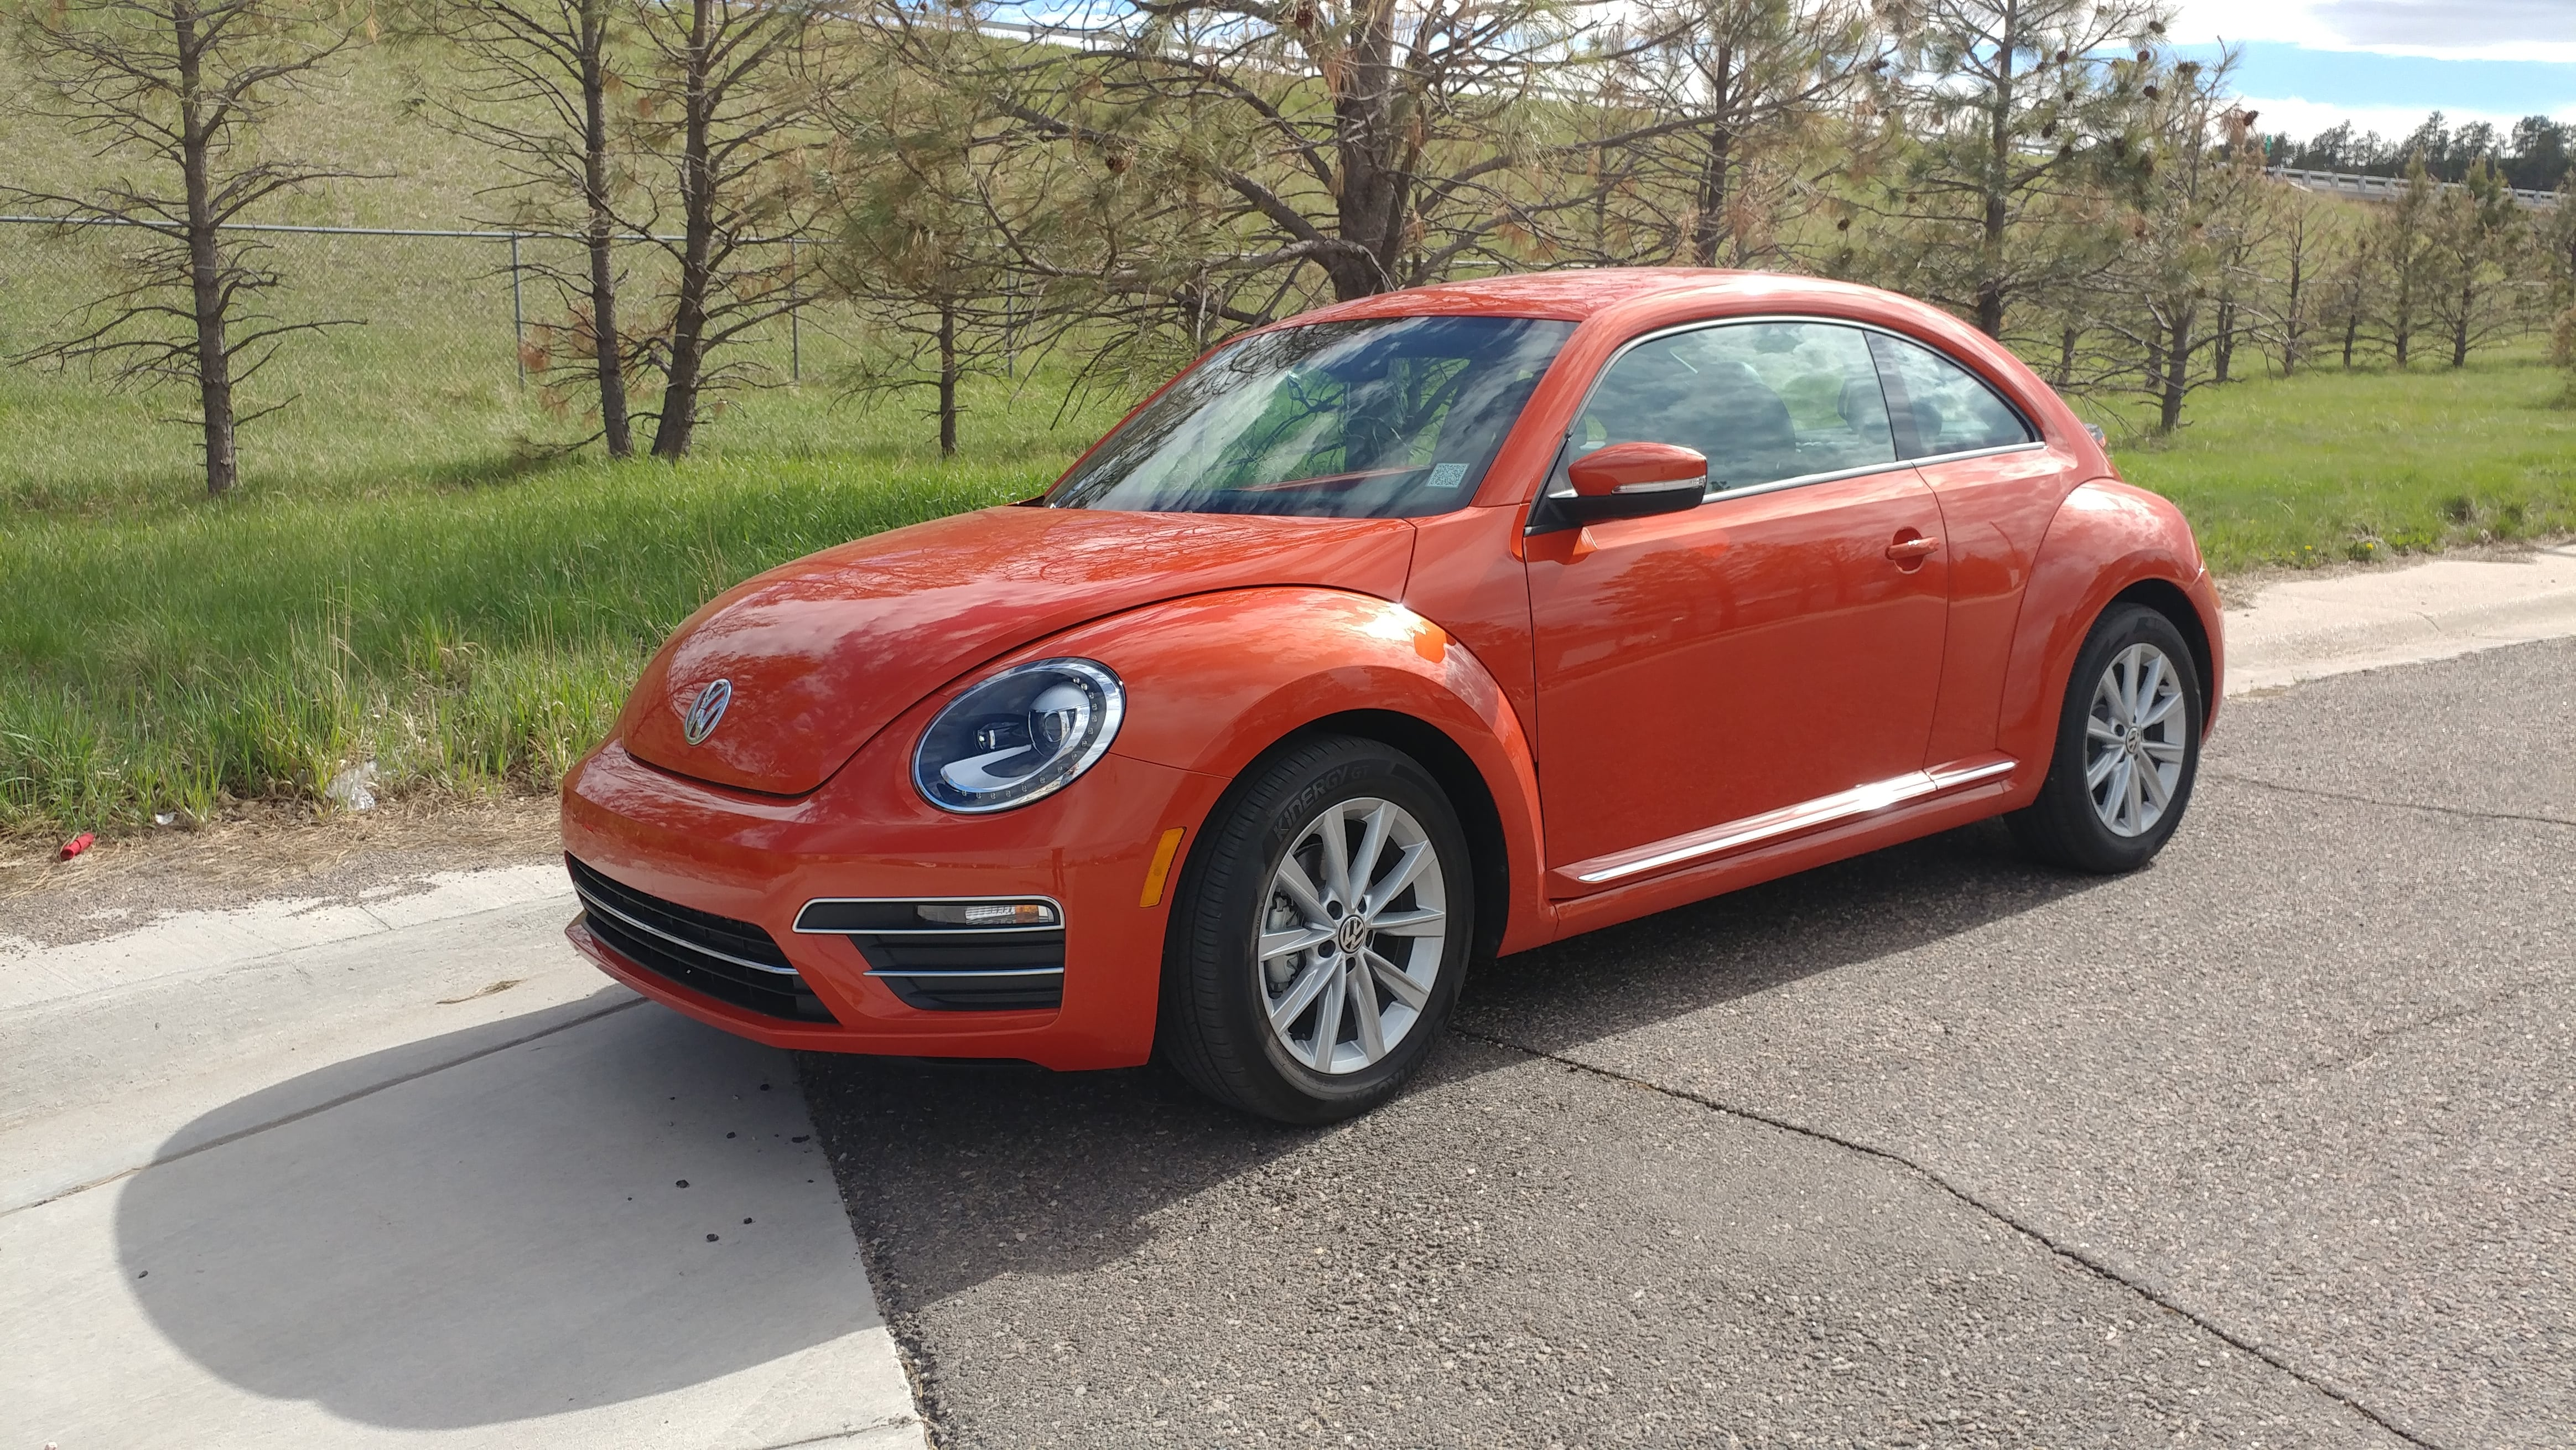 2017 Volkswagen Beetle is Safe, Fun, and Doesn't Cost Much